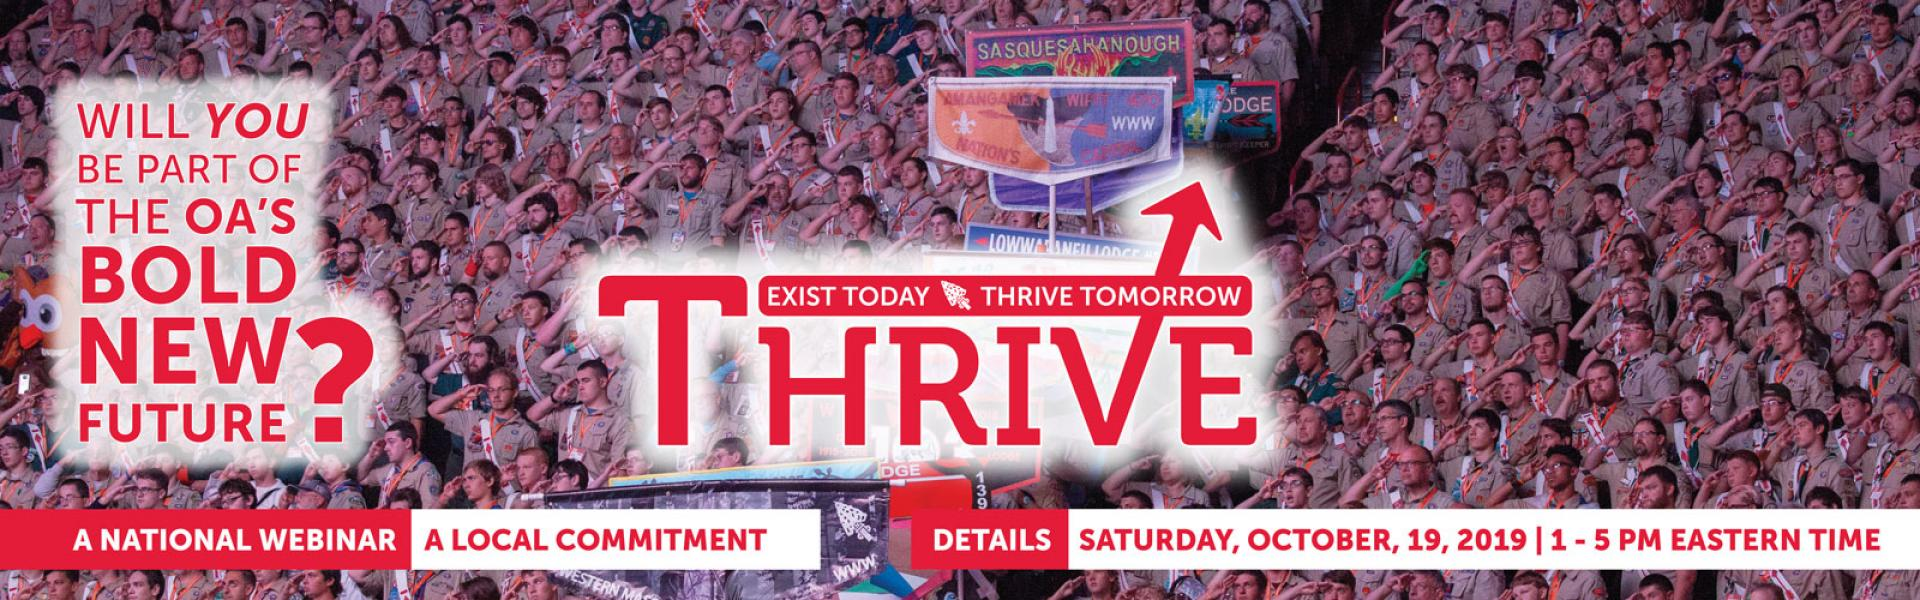 Thrive: A National Webinar, A Local Commitment